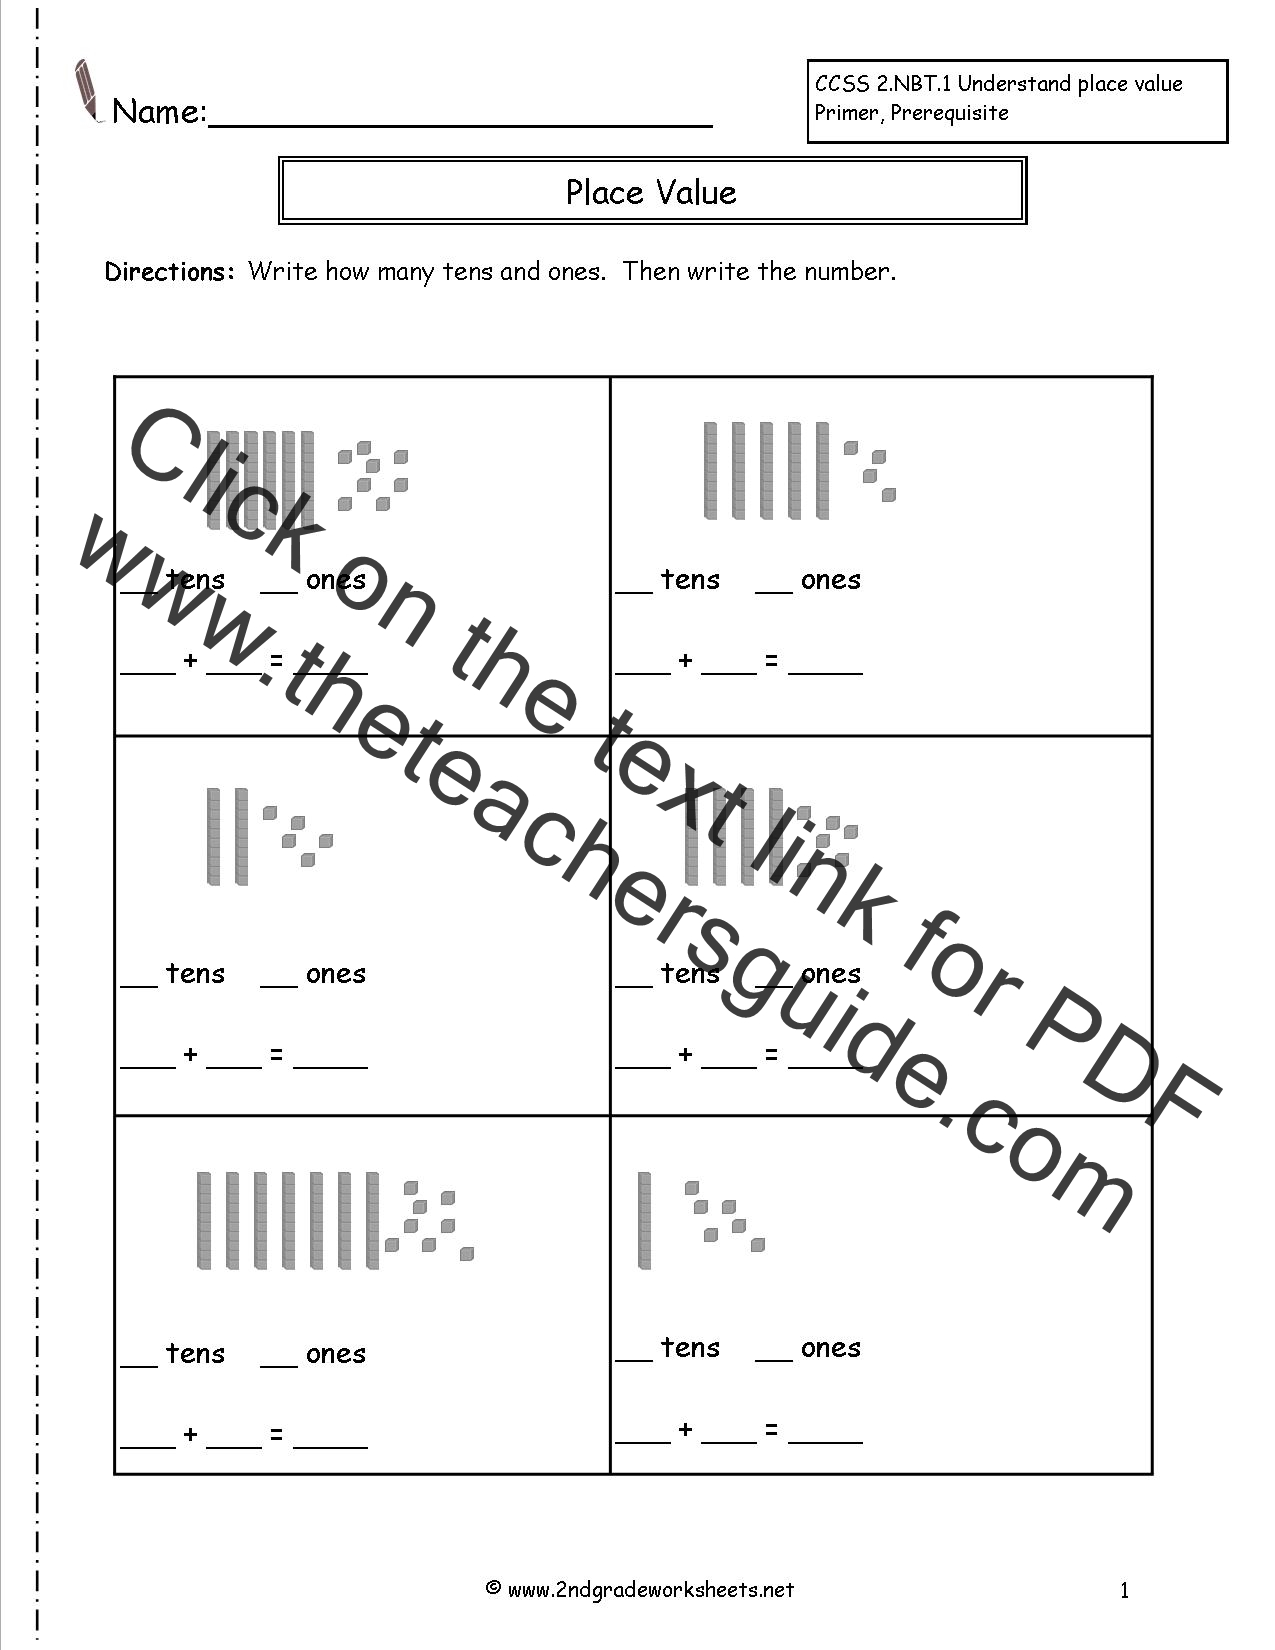 Worksheets Place Value Worksheets Free Printable second grade place value worksheets worksheet